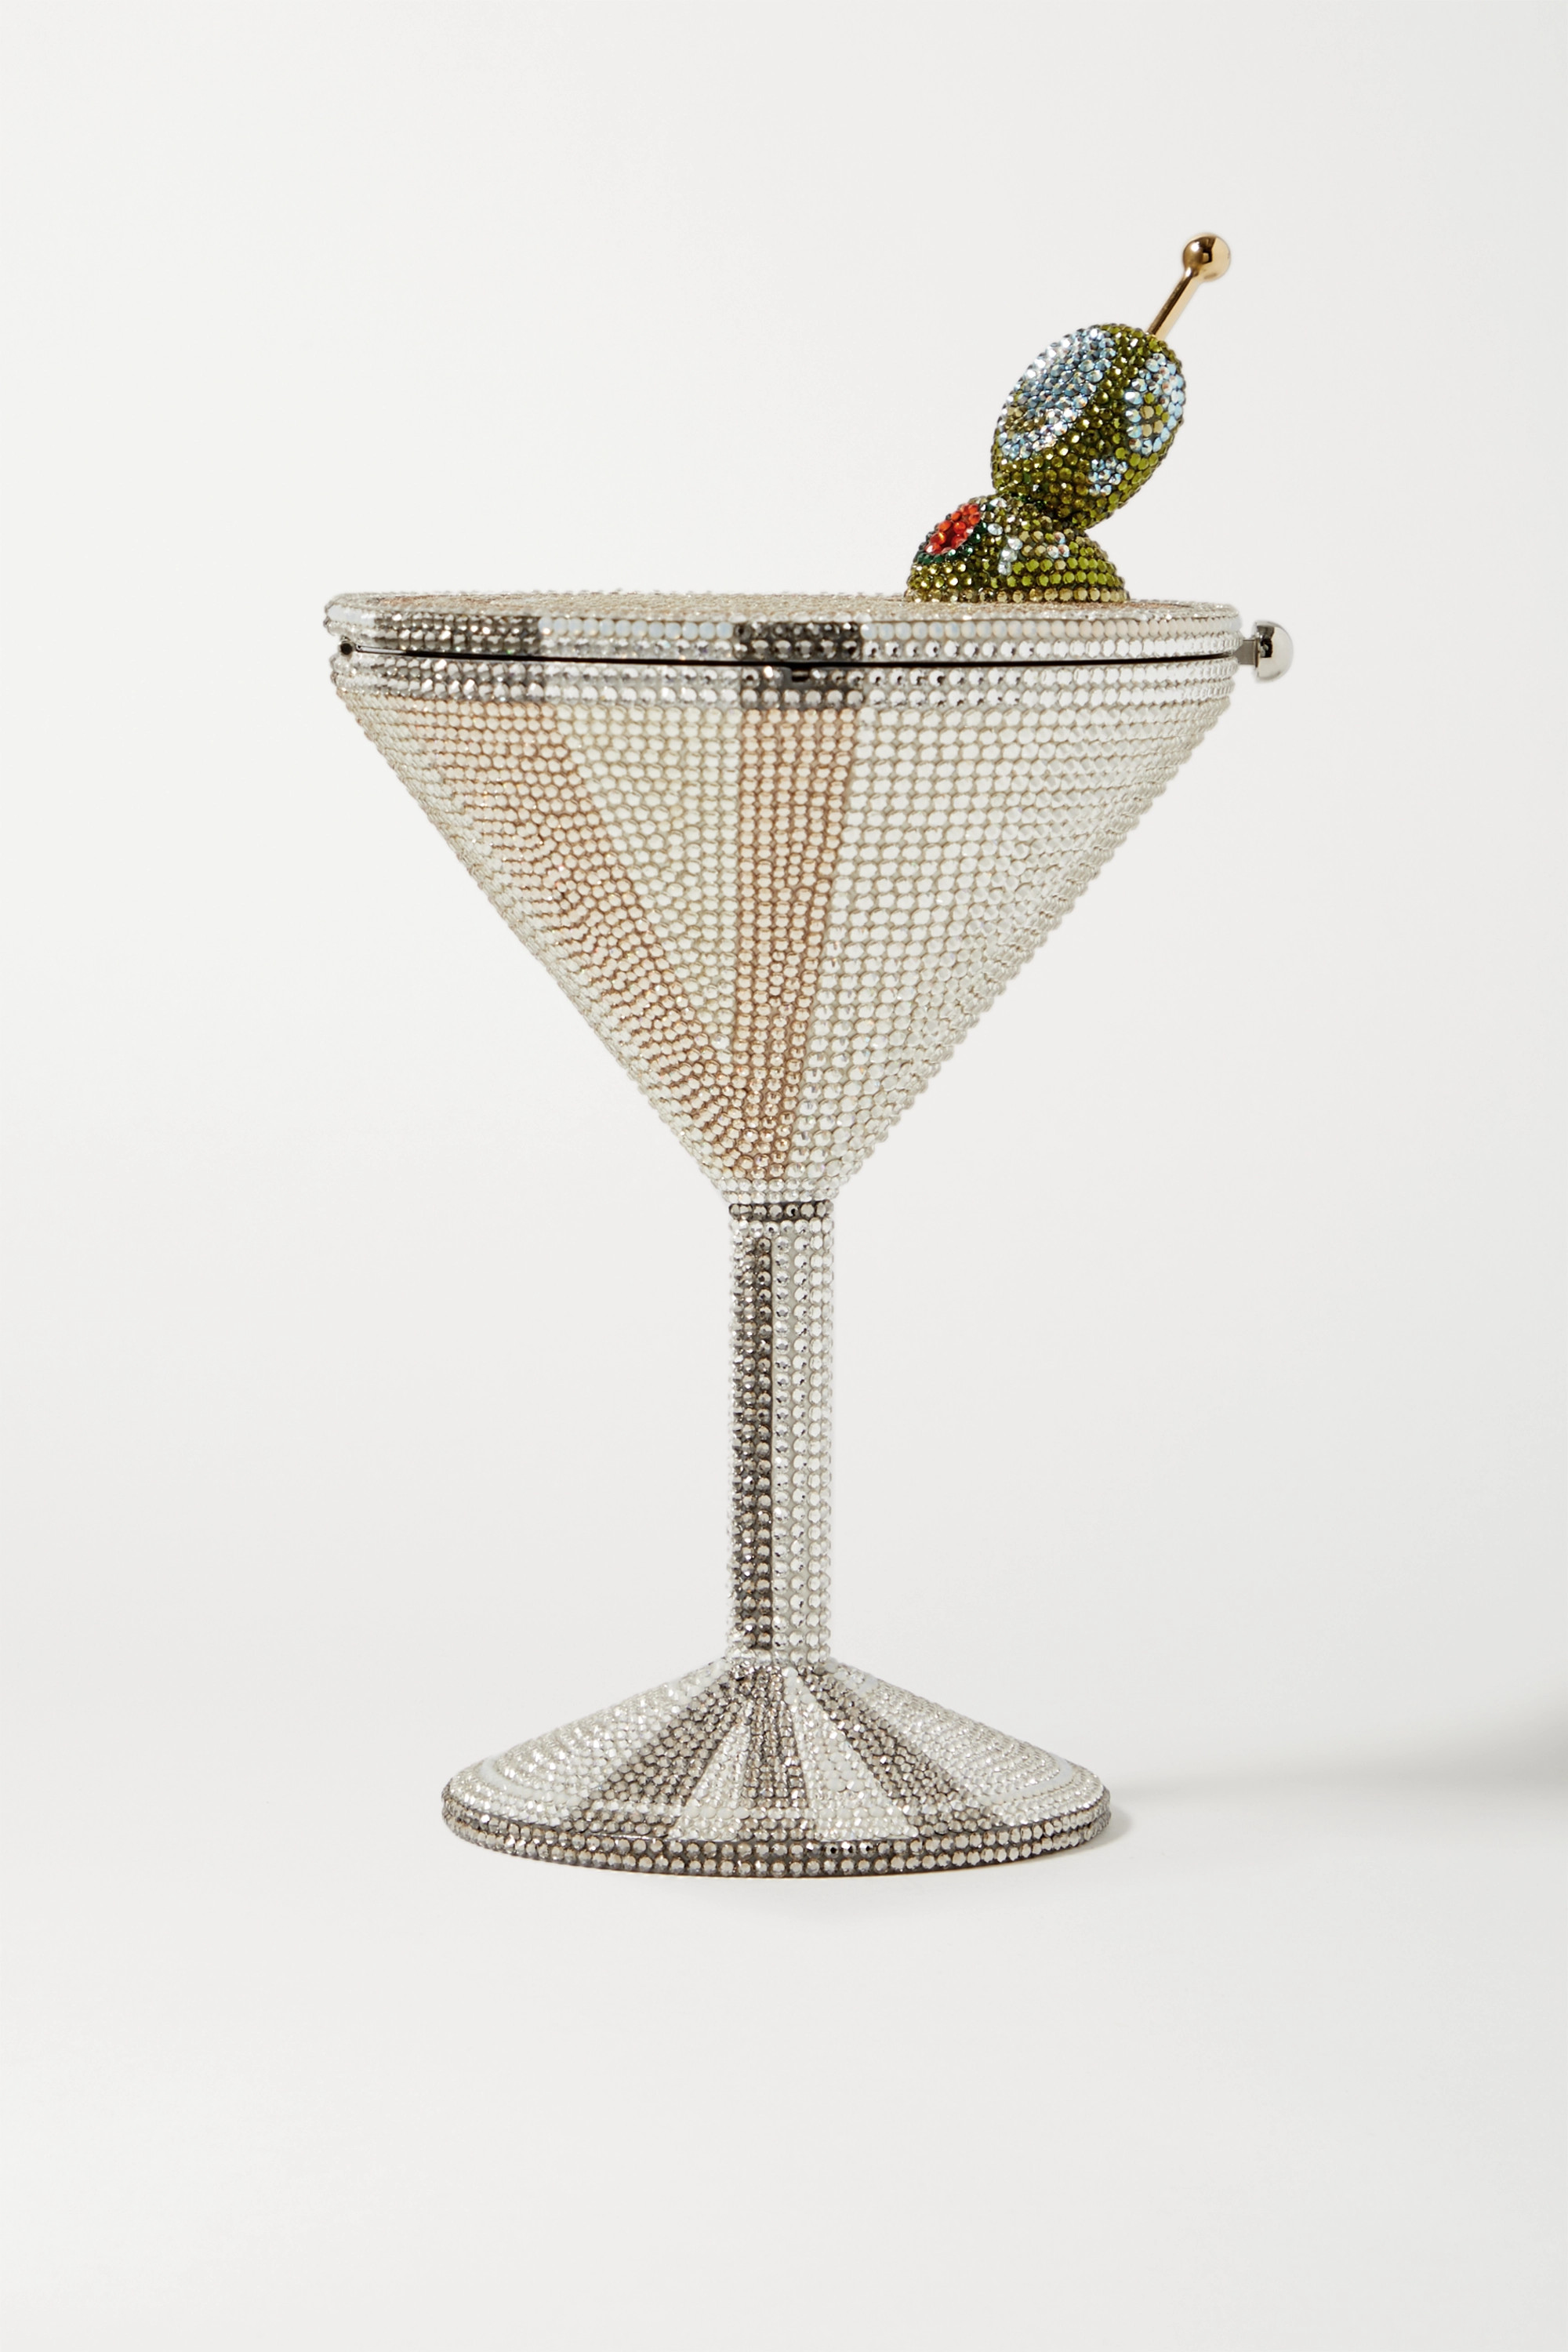 Judith Leiber Couture Martini crystal-embellished silver-tone clutch